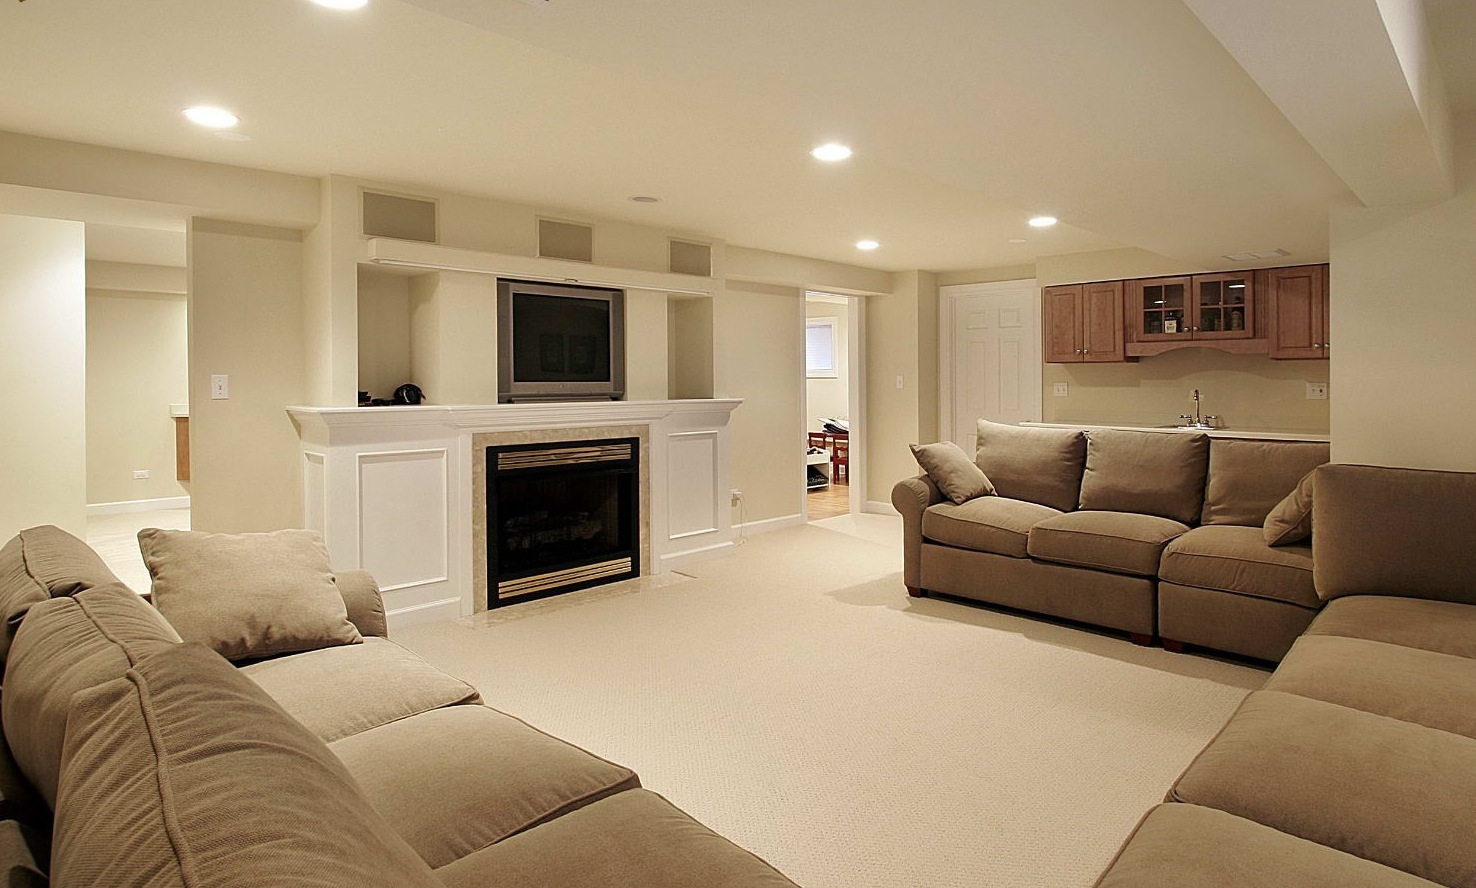 Home Renovation Ideas Living Room Prepossessing 30 Basement Remodeling Ideas & Inspiration Design Decoration